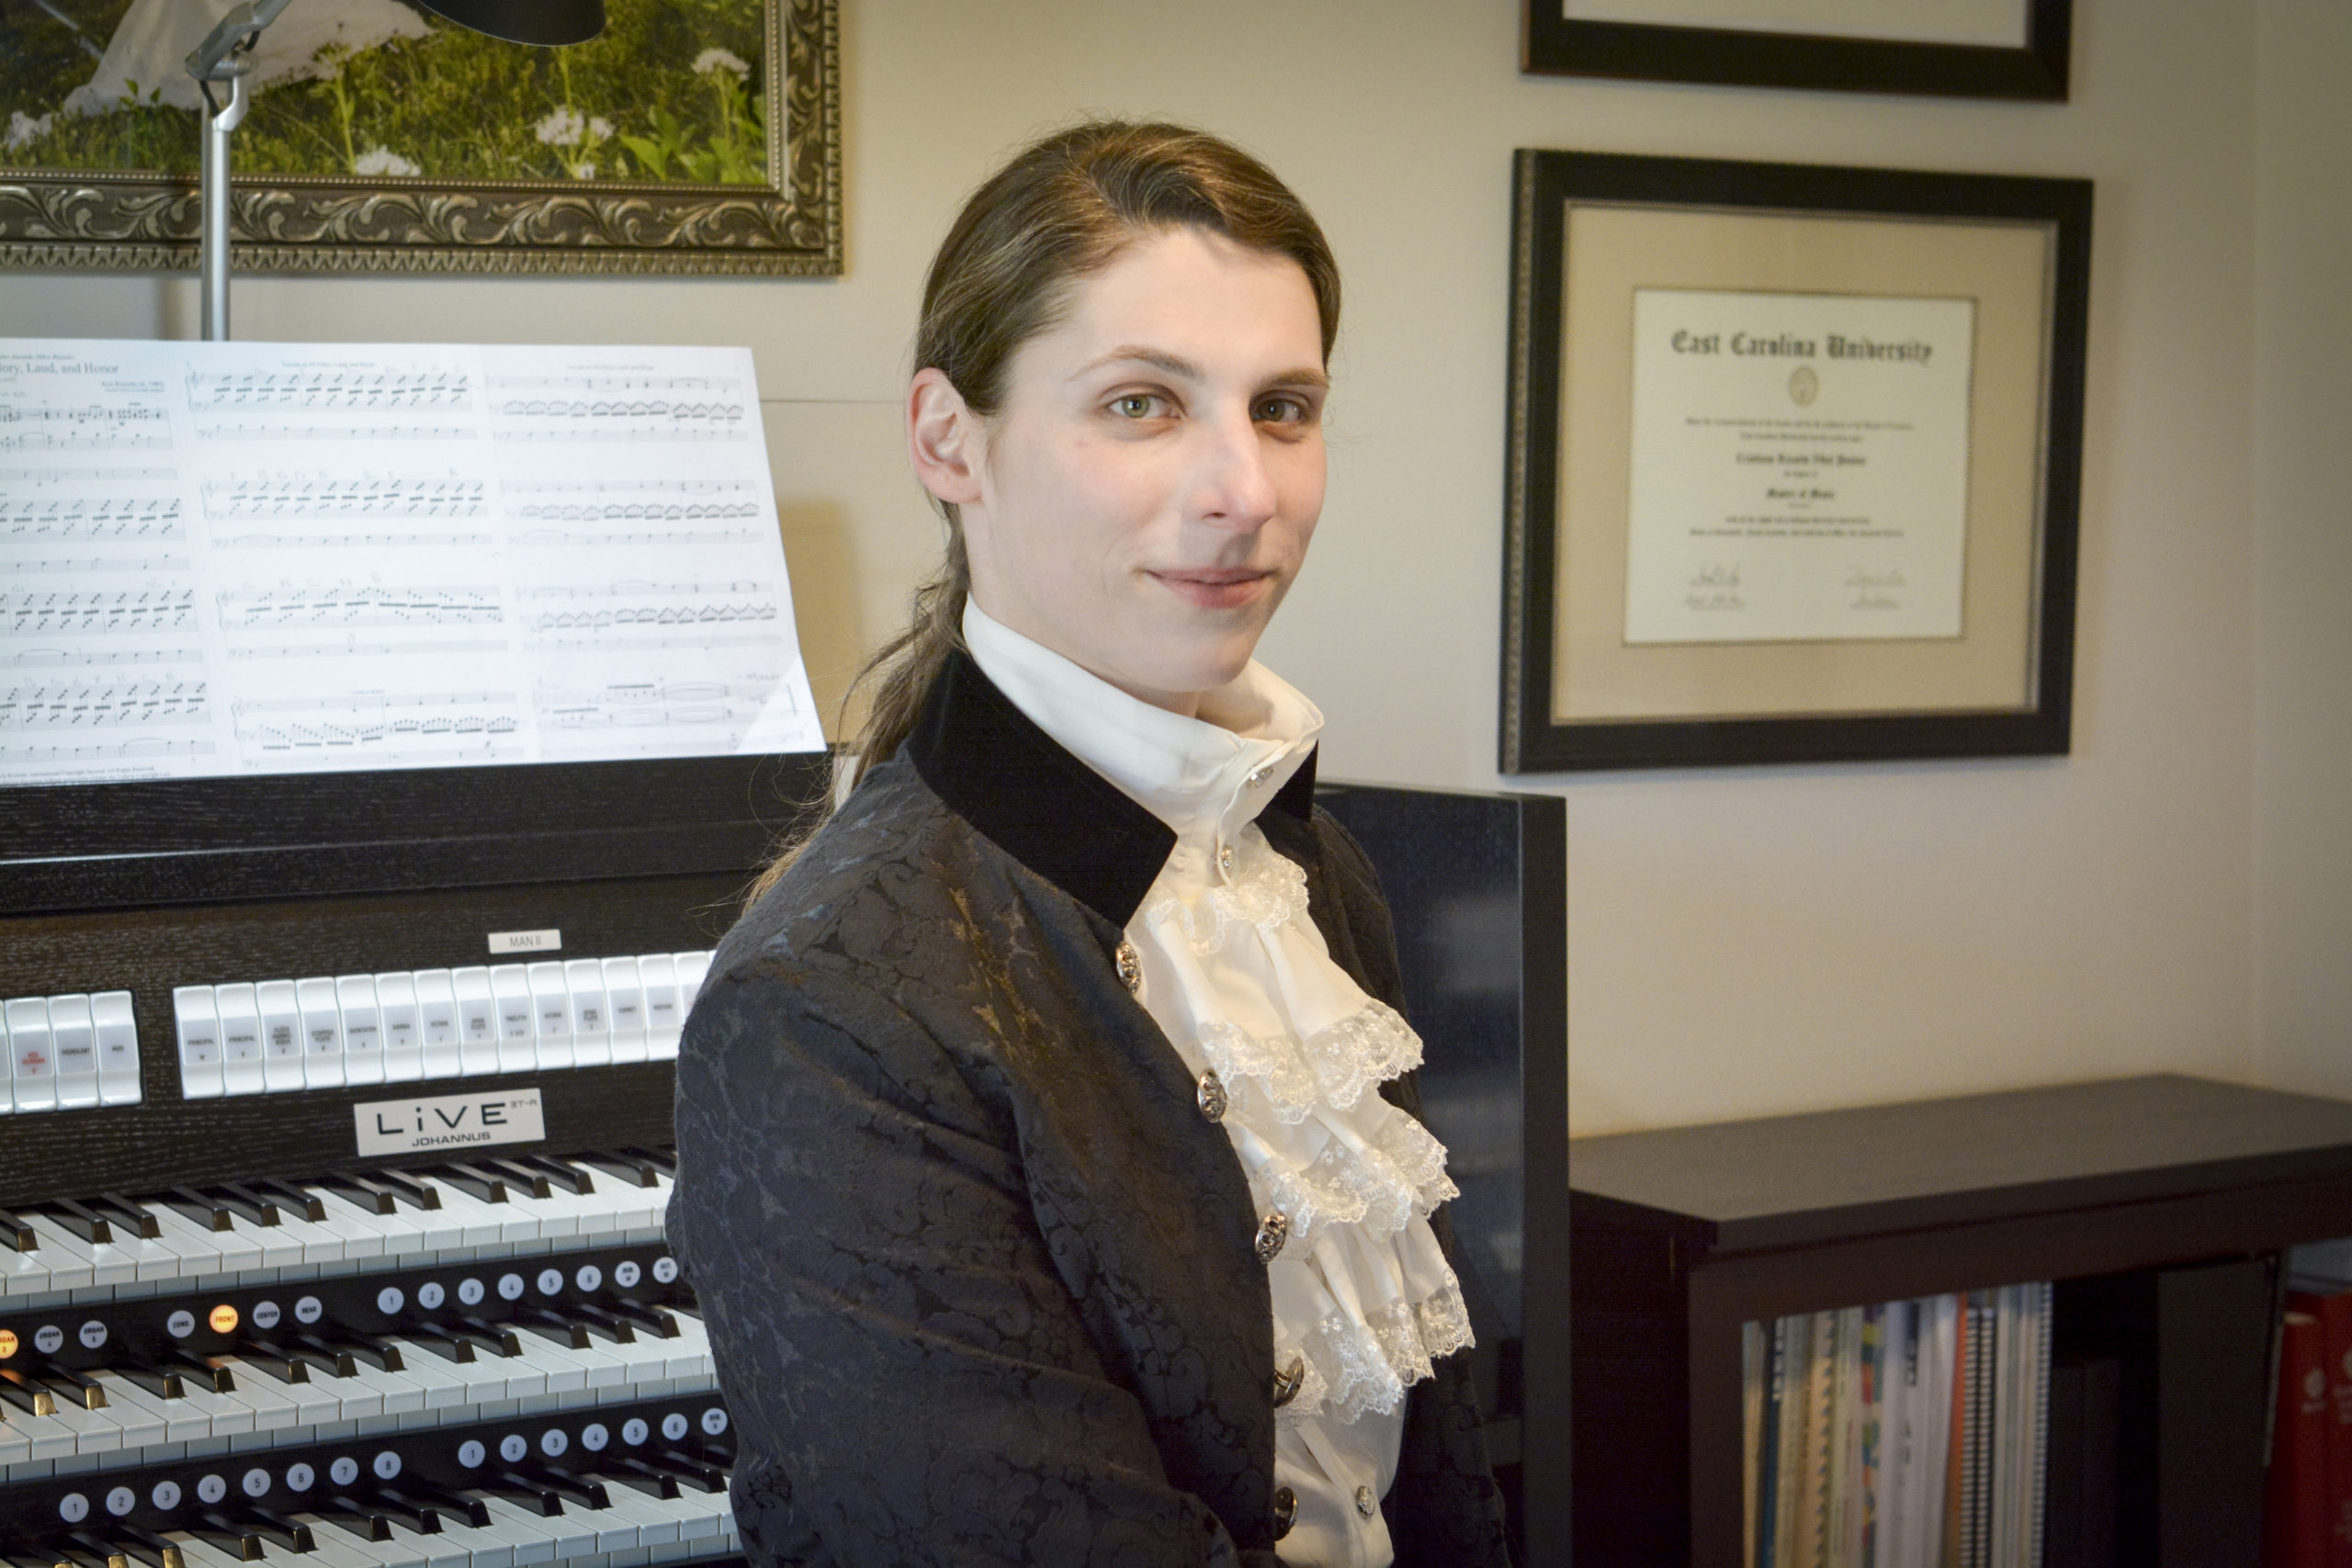 Trans organist and composer Dr. Kris Rizzotto at their home organ (transgender classical musician)